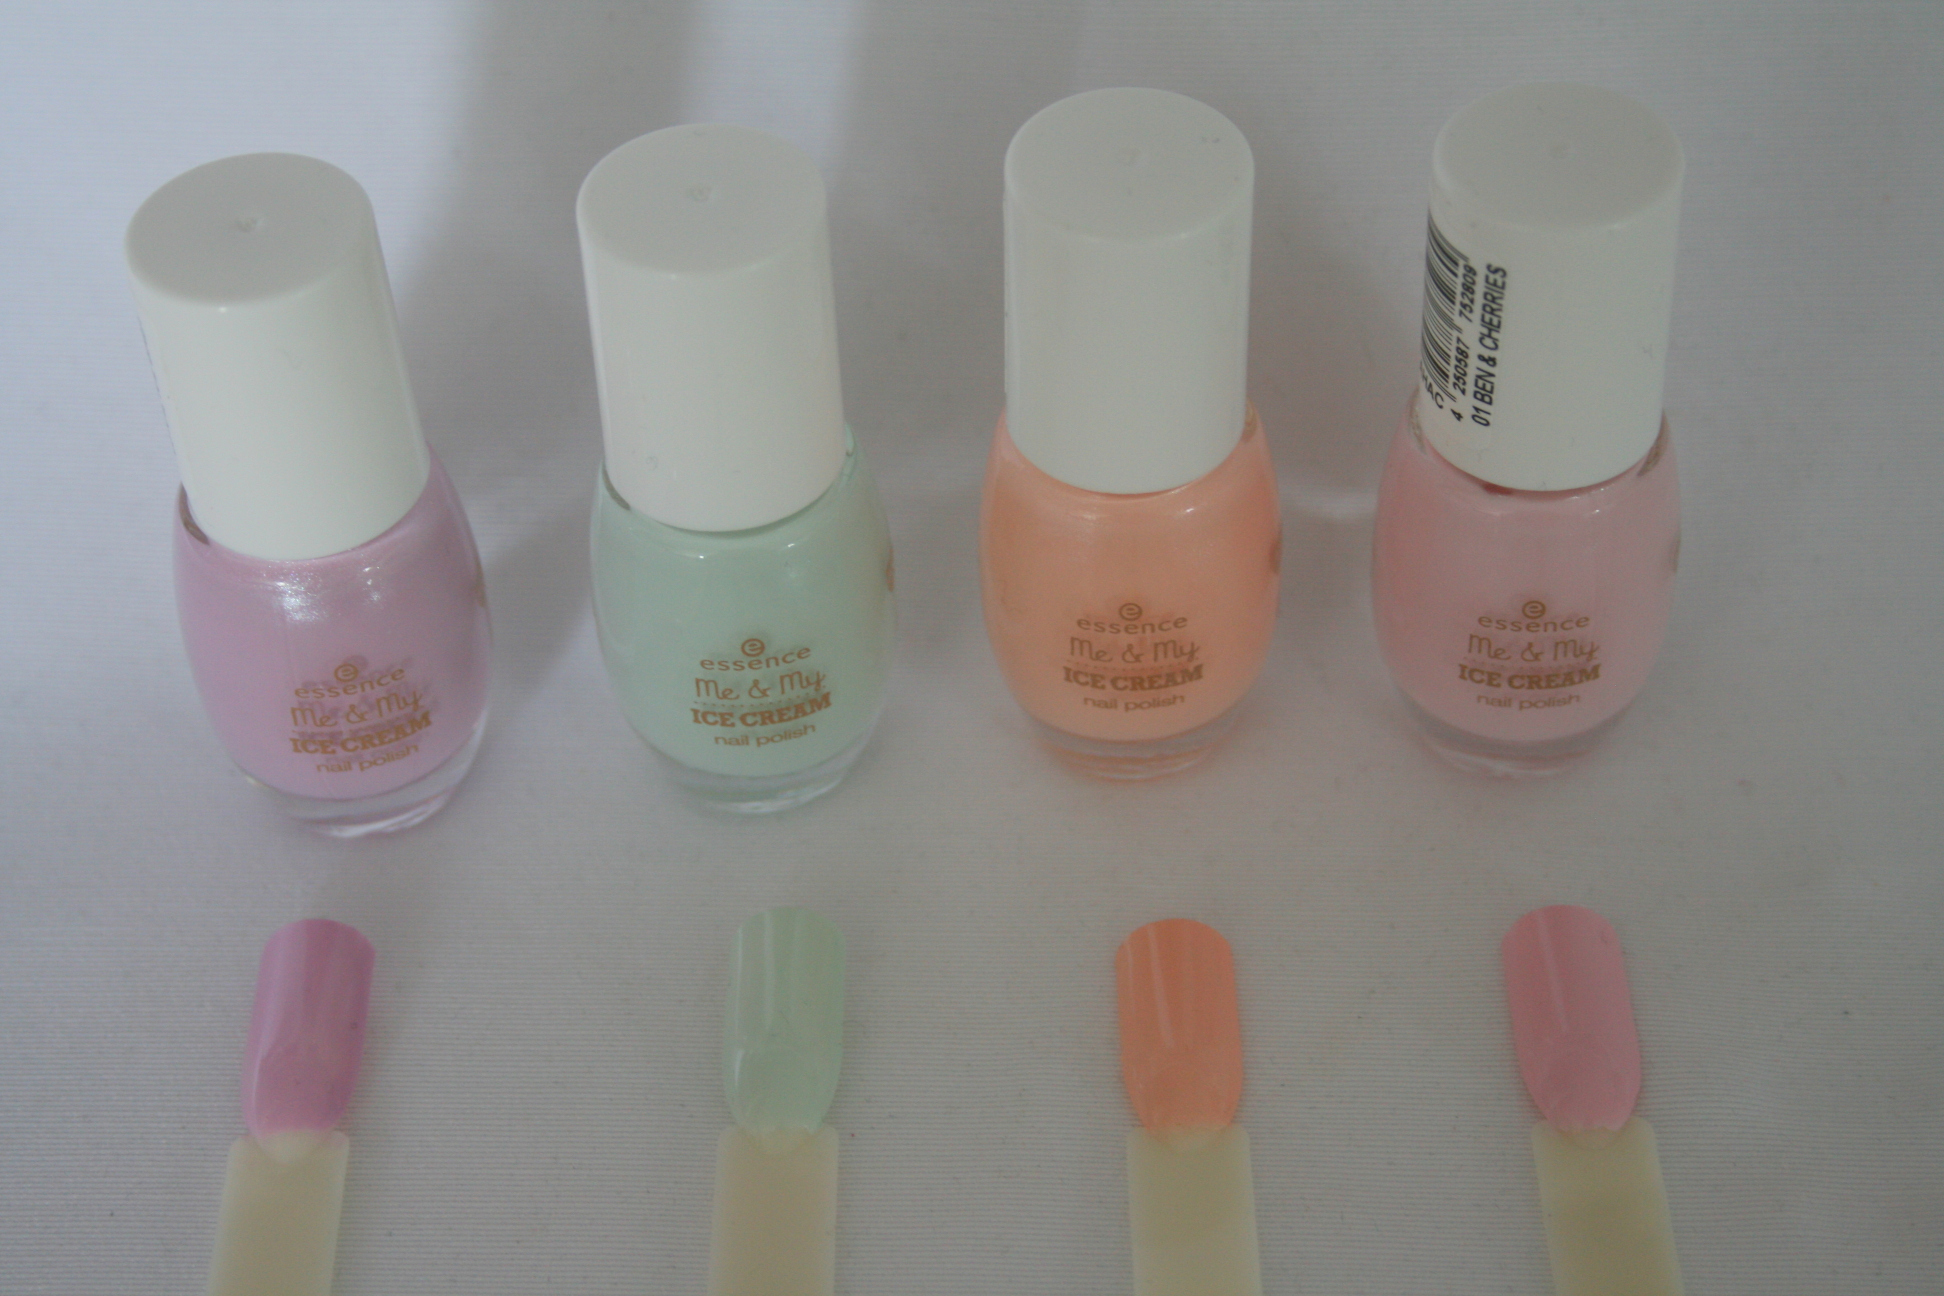 Essence me and my icecream nagellack nailpolish